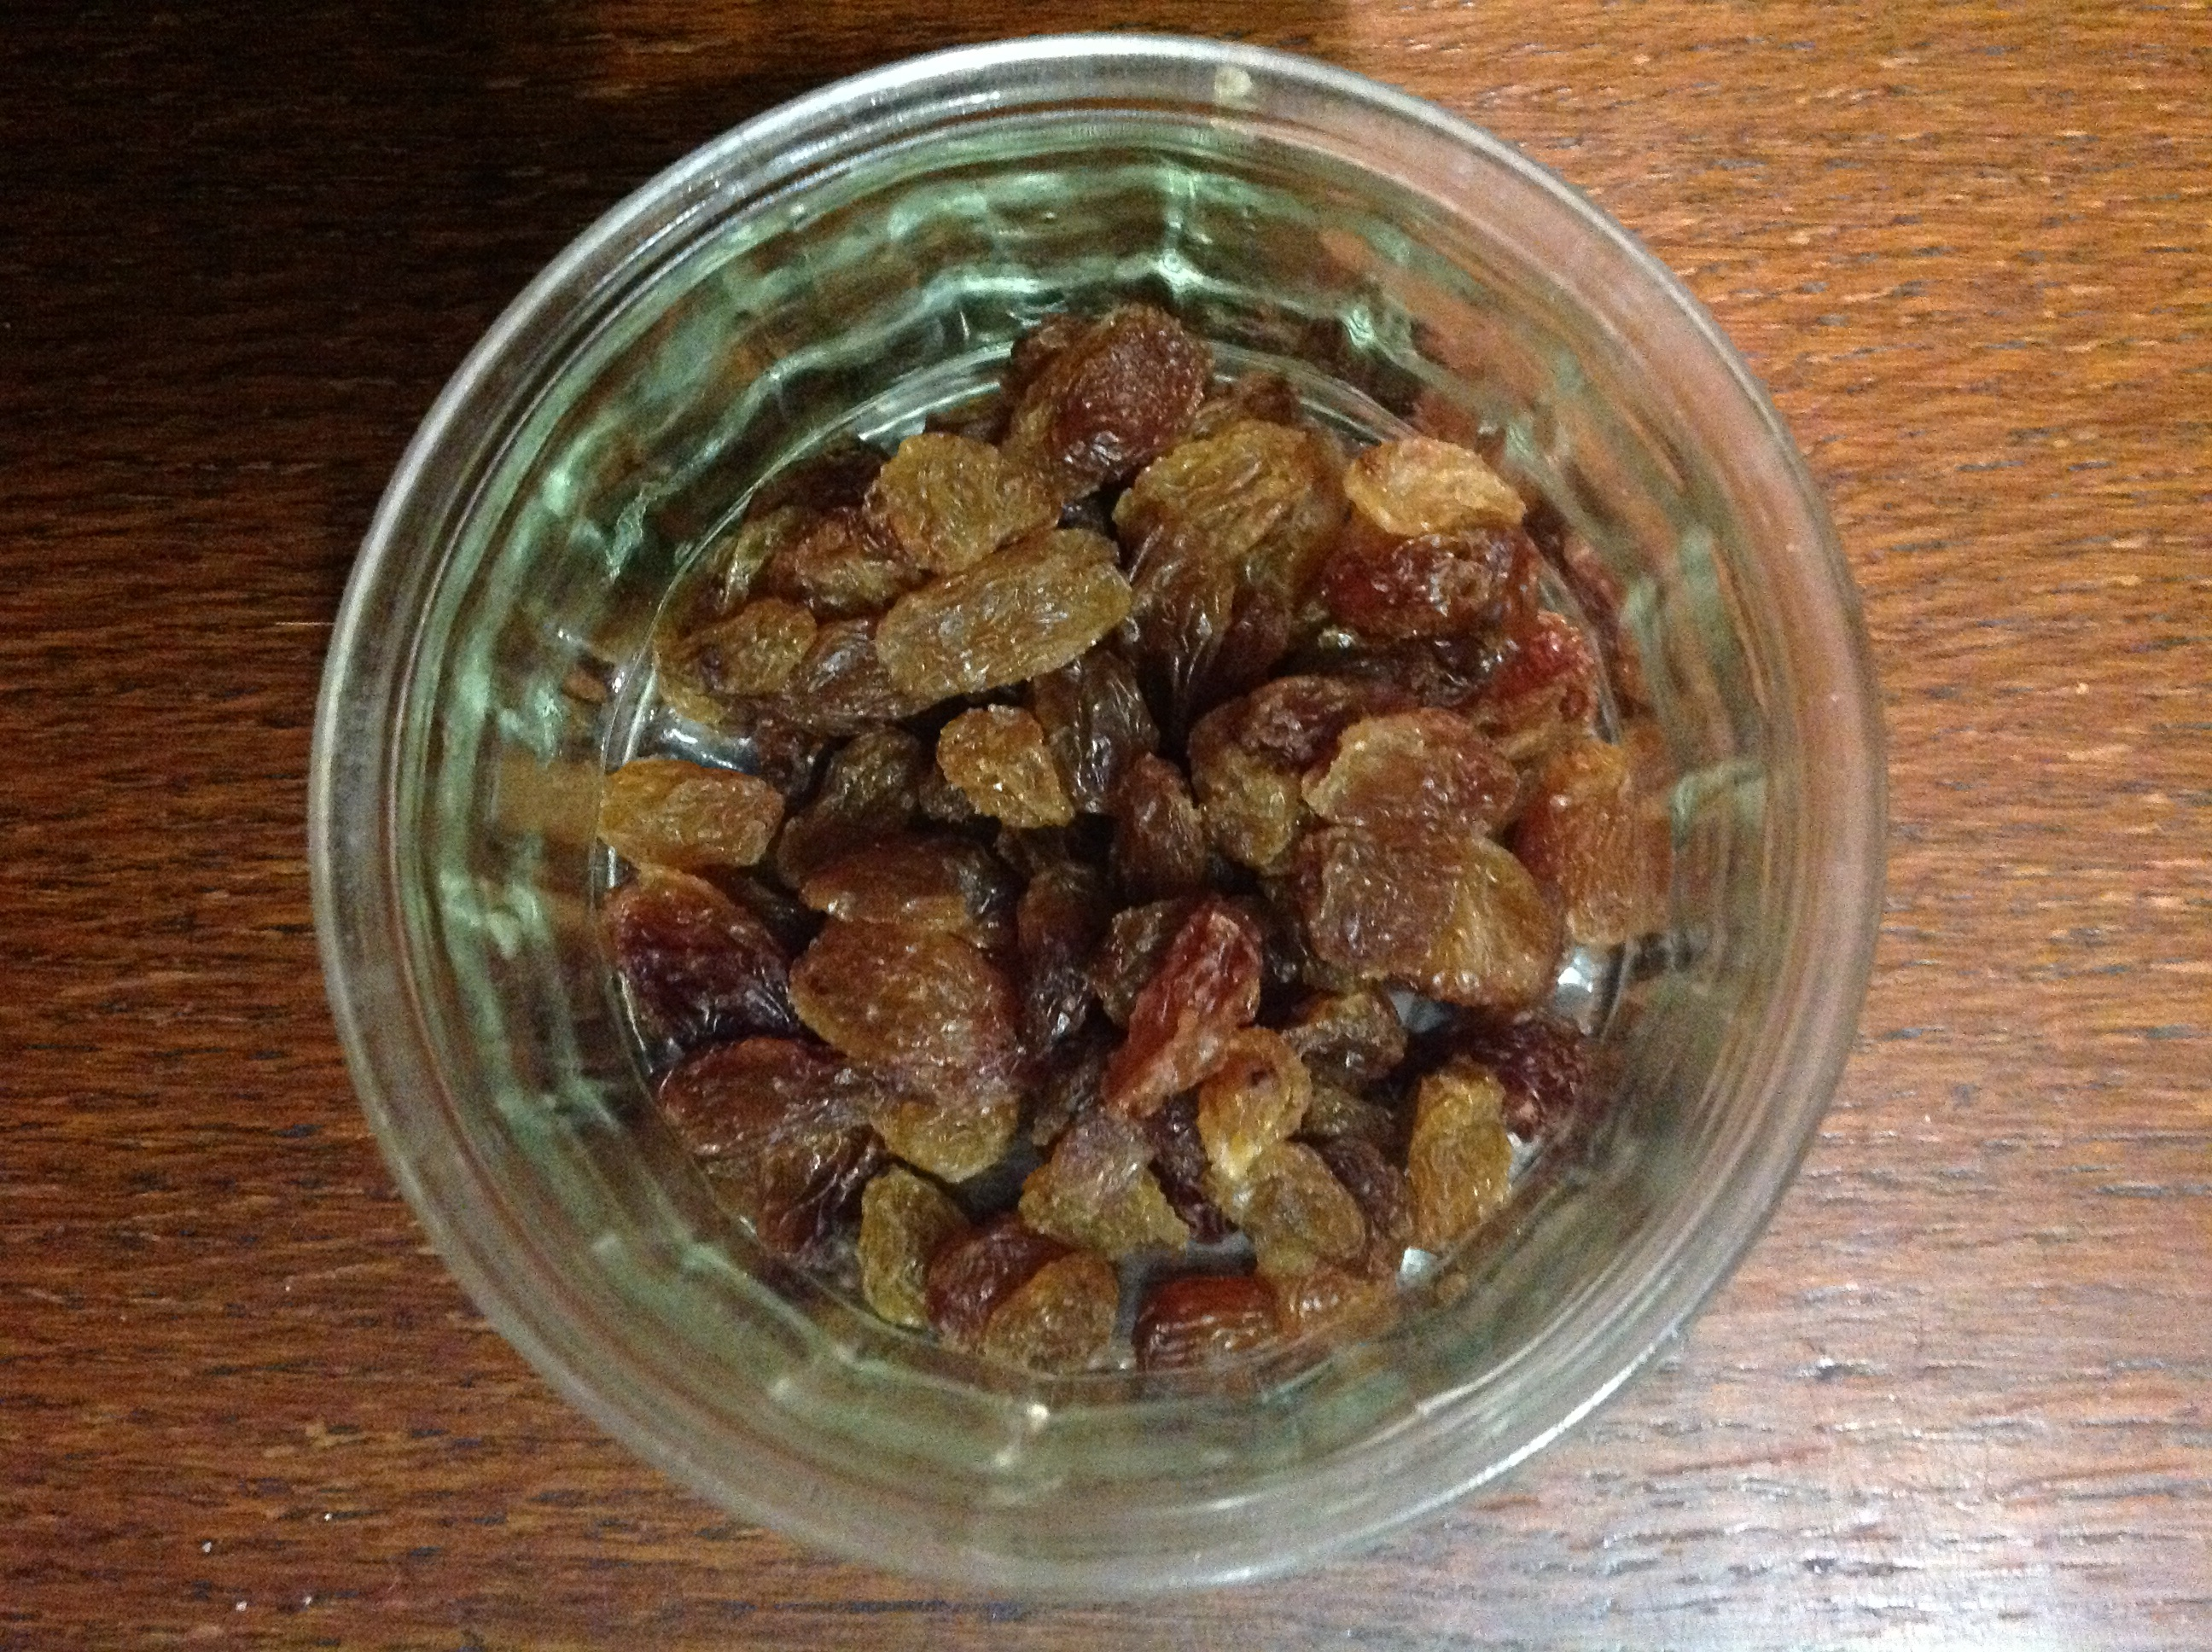 Sultanas - before soaking